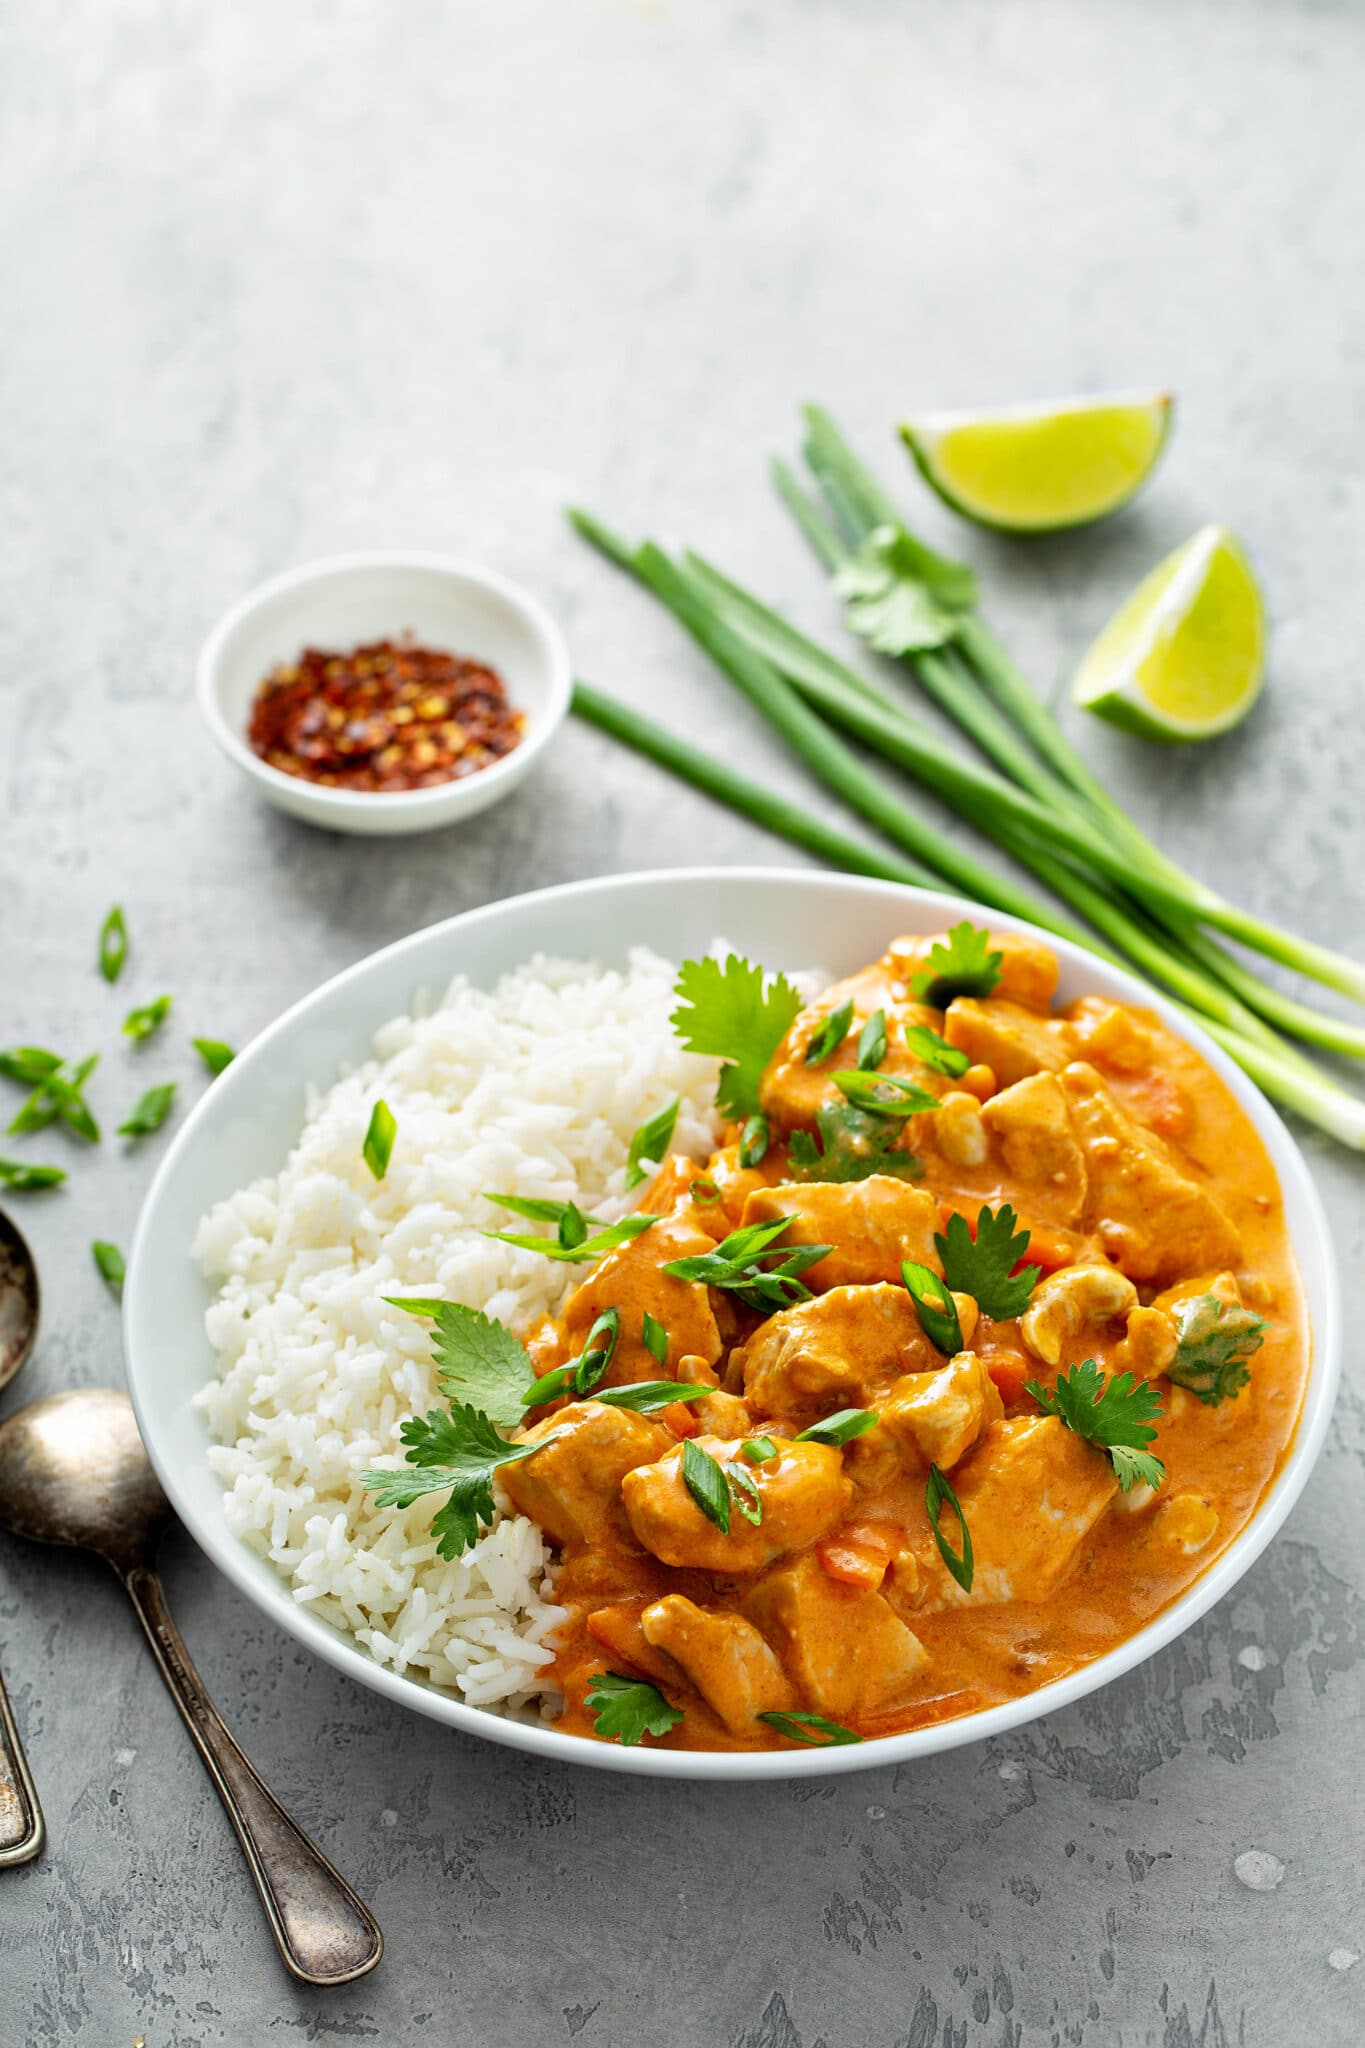 A curry dish decorated with fresh cilantro.